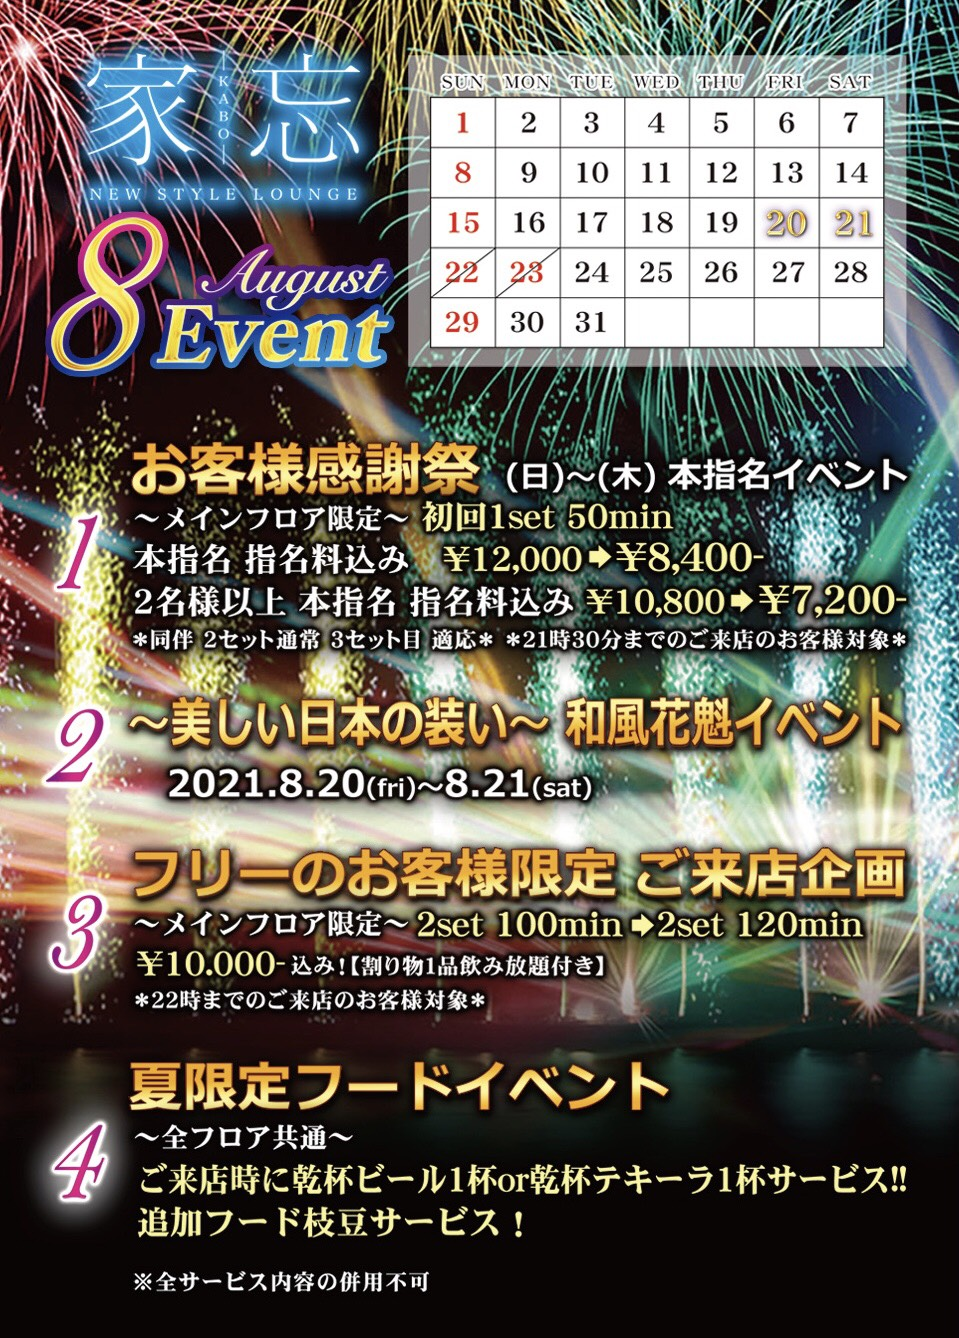 NEW STYLE LOUNGE 家忘-KABO-8月イベント